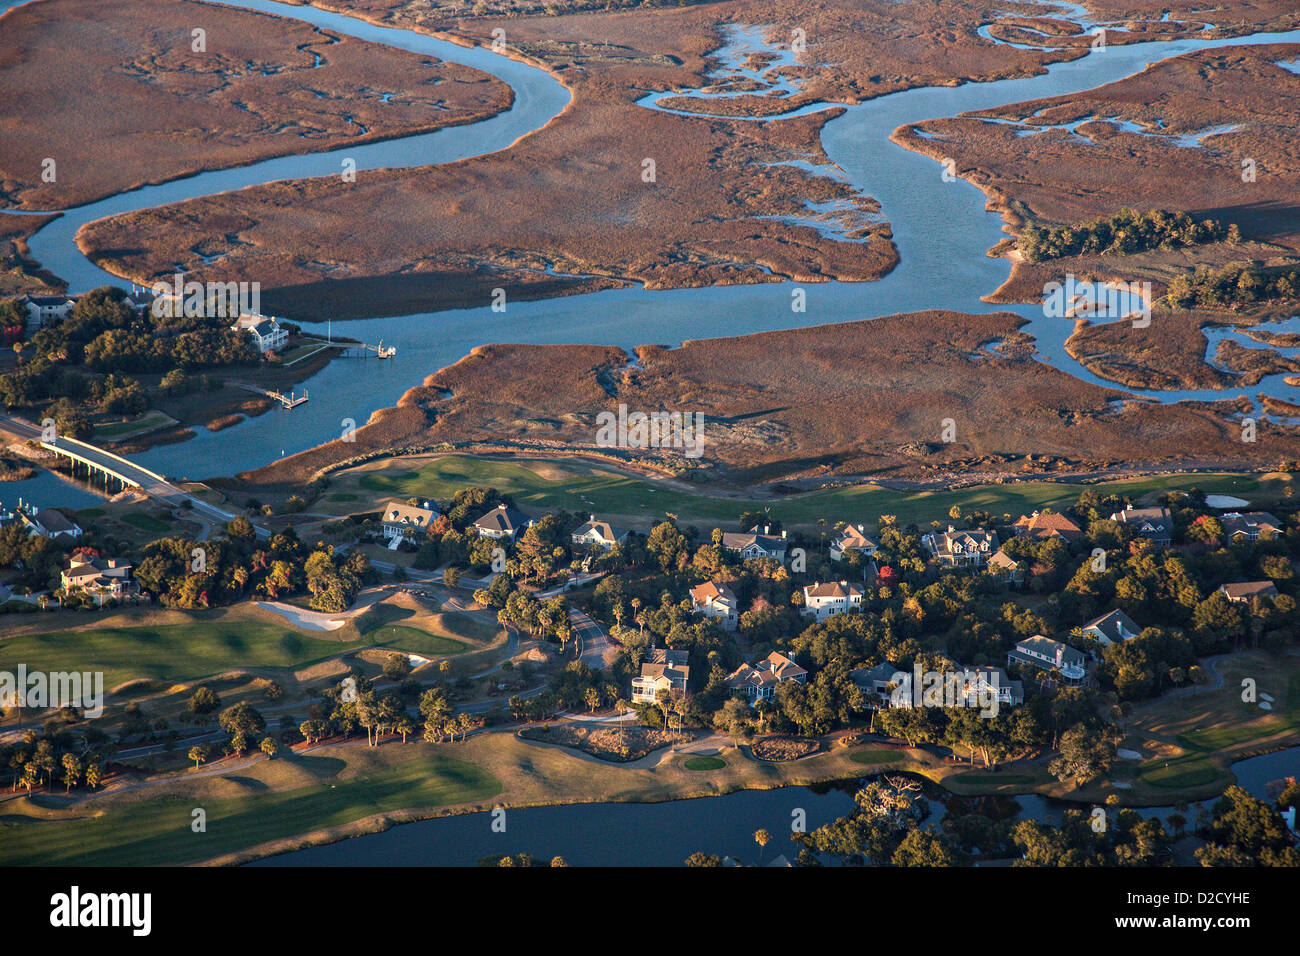 Aerial showing the River Course on Kiawah Island, South Carolina. - Stock Image